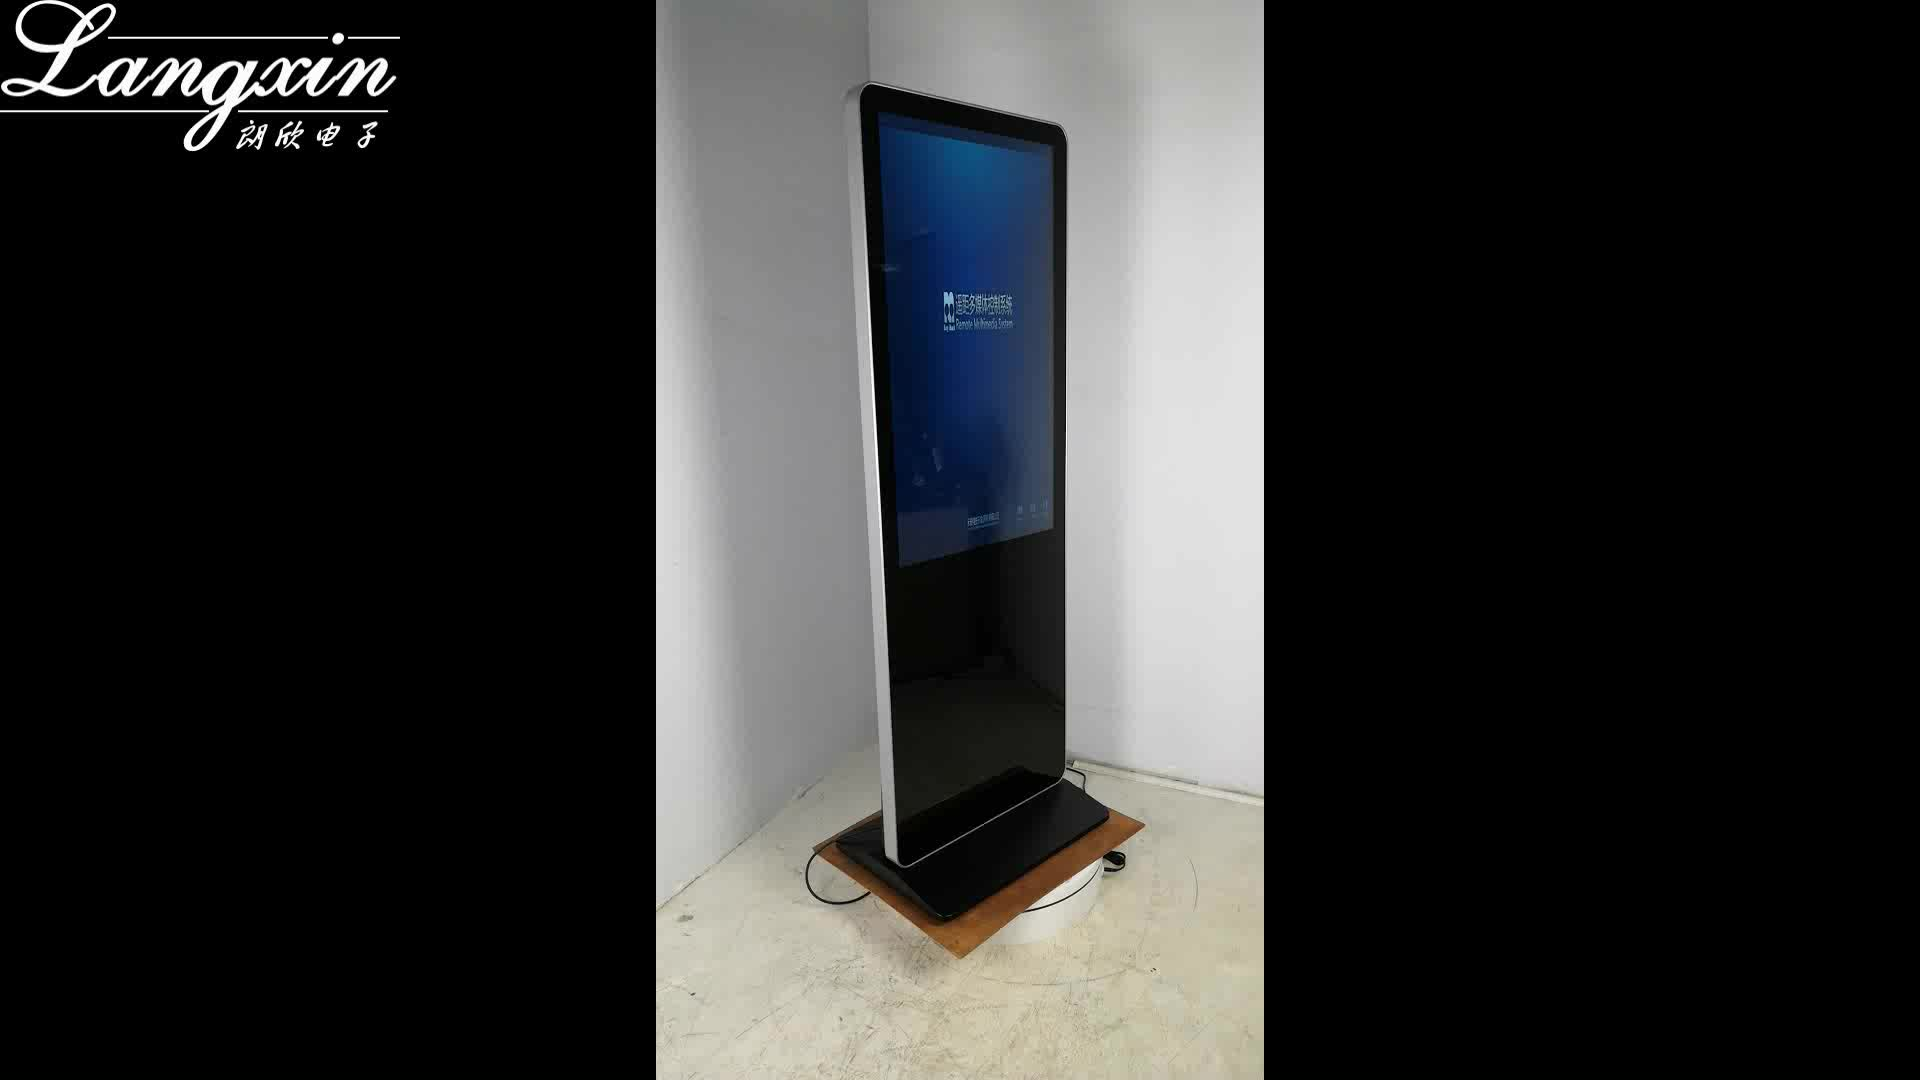 43inch 49inch 55inch 65inch Inshop Window Mobile Android 8.0 Android 9.0 Digital Signage Player